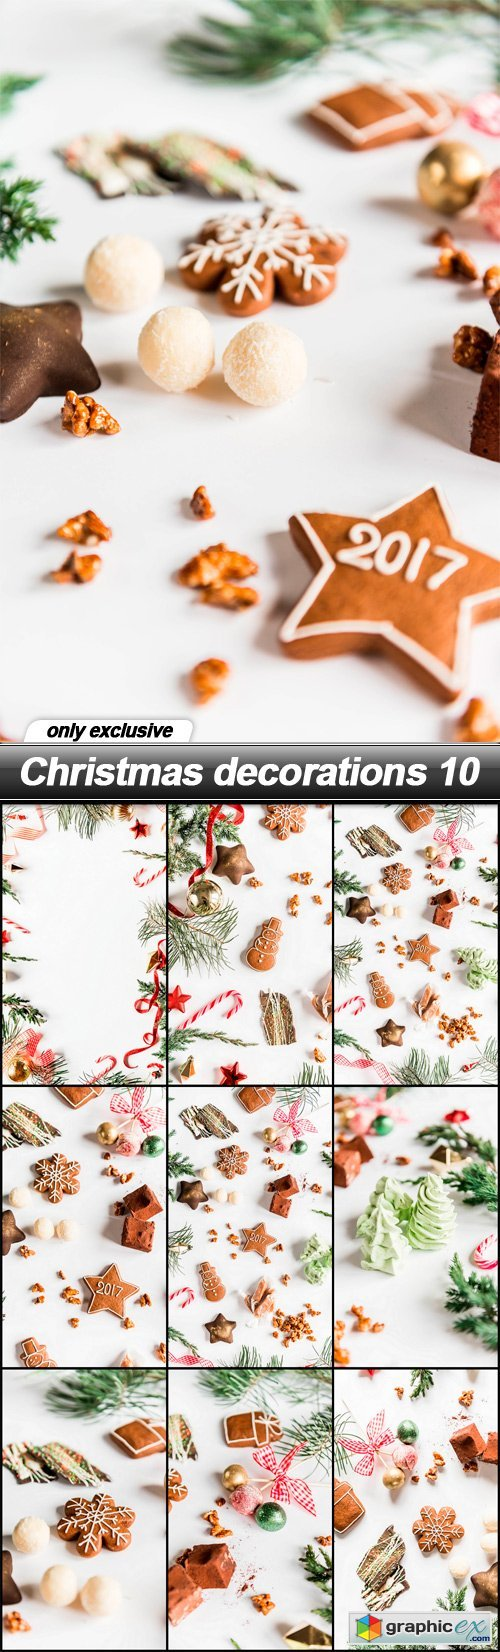 Christmas decorations 10 - 10 UHQ JPEG